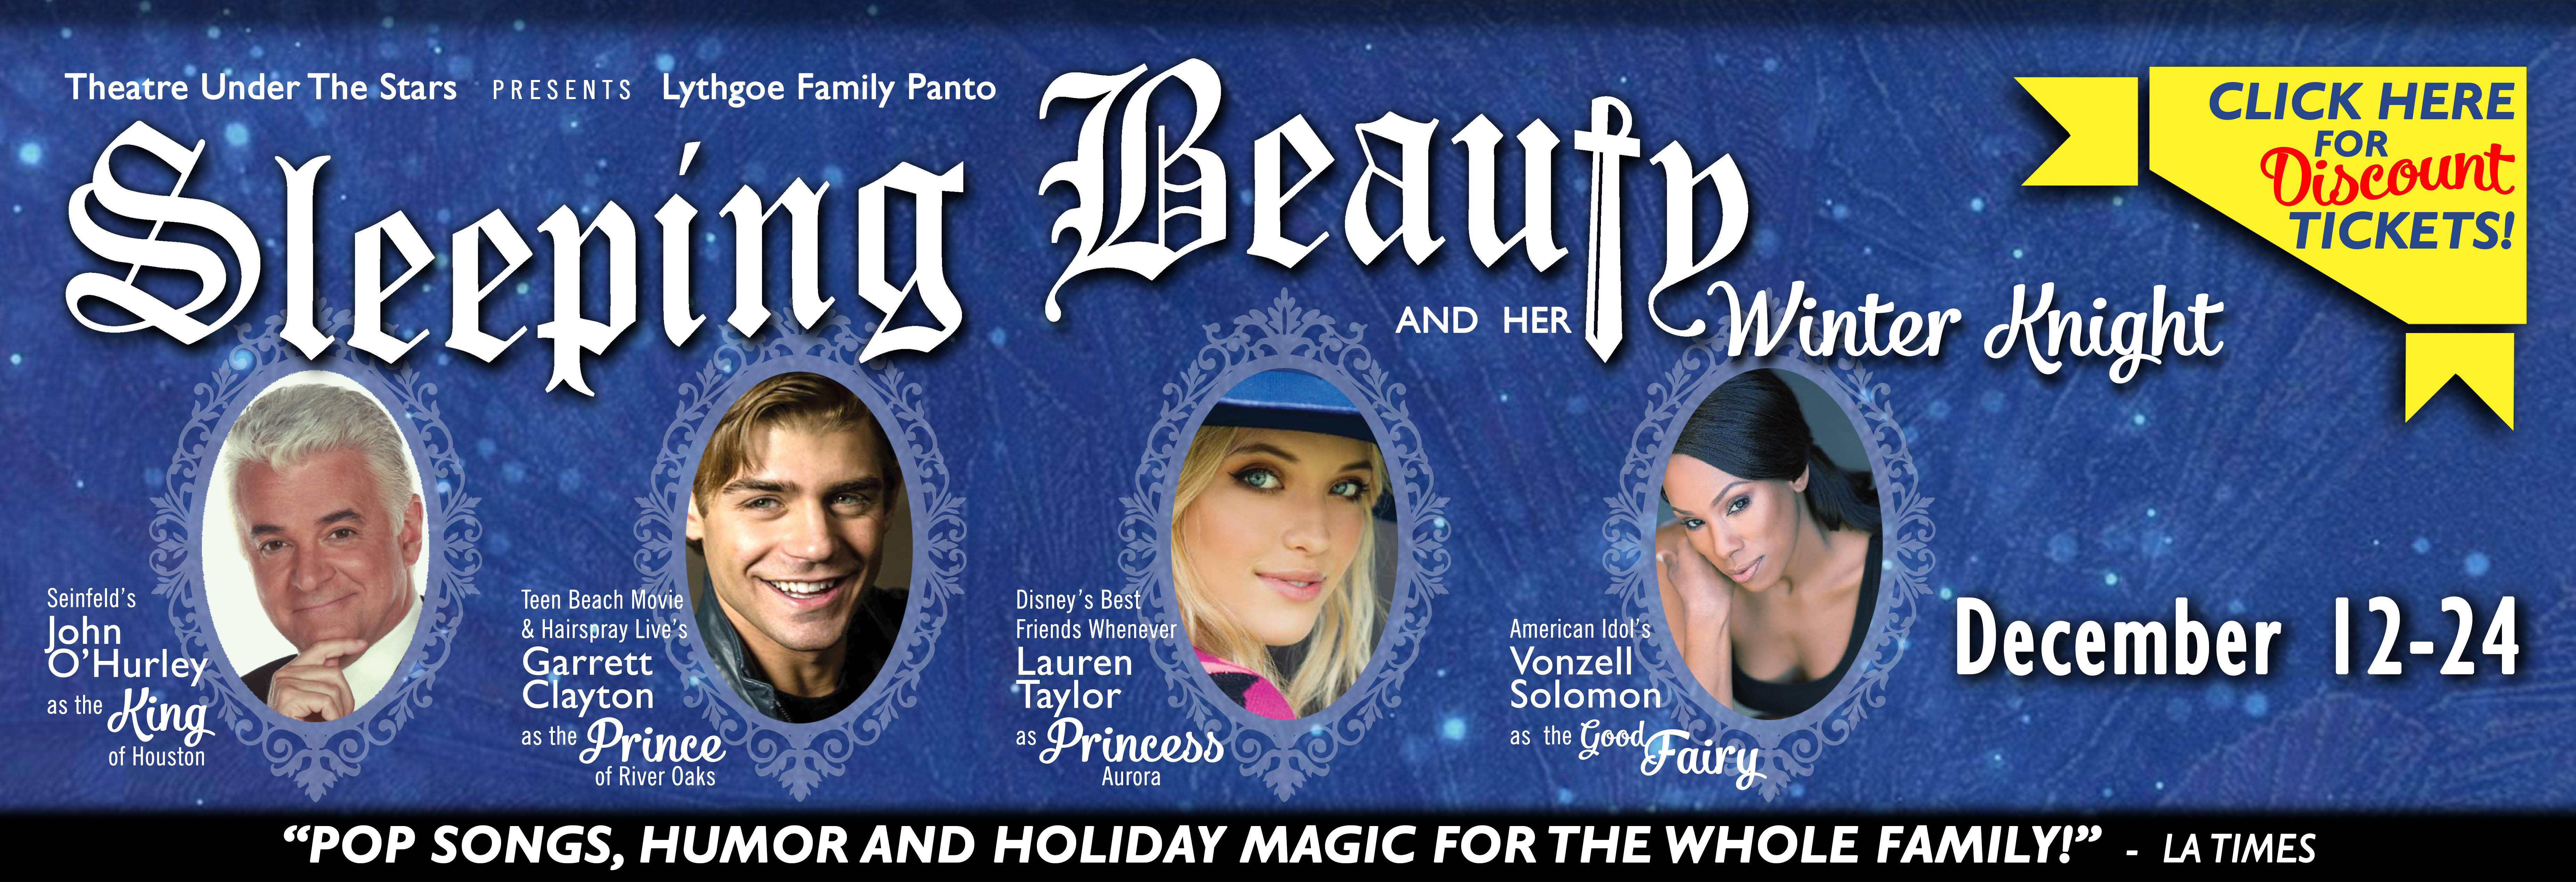 Theatre Under The Stars Presents, Sleeping Beauty And Her Winter Knight, in Houston, TX Banner ad